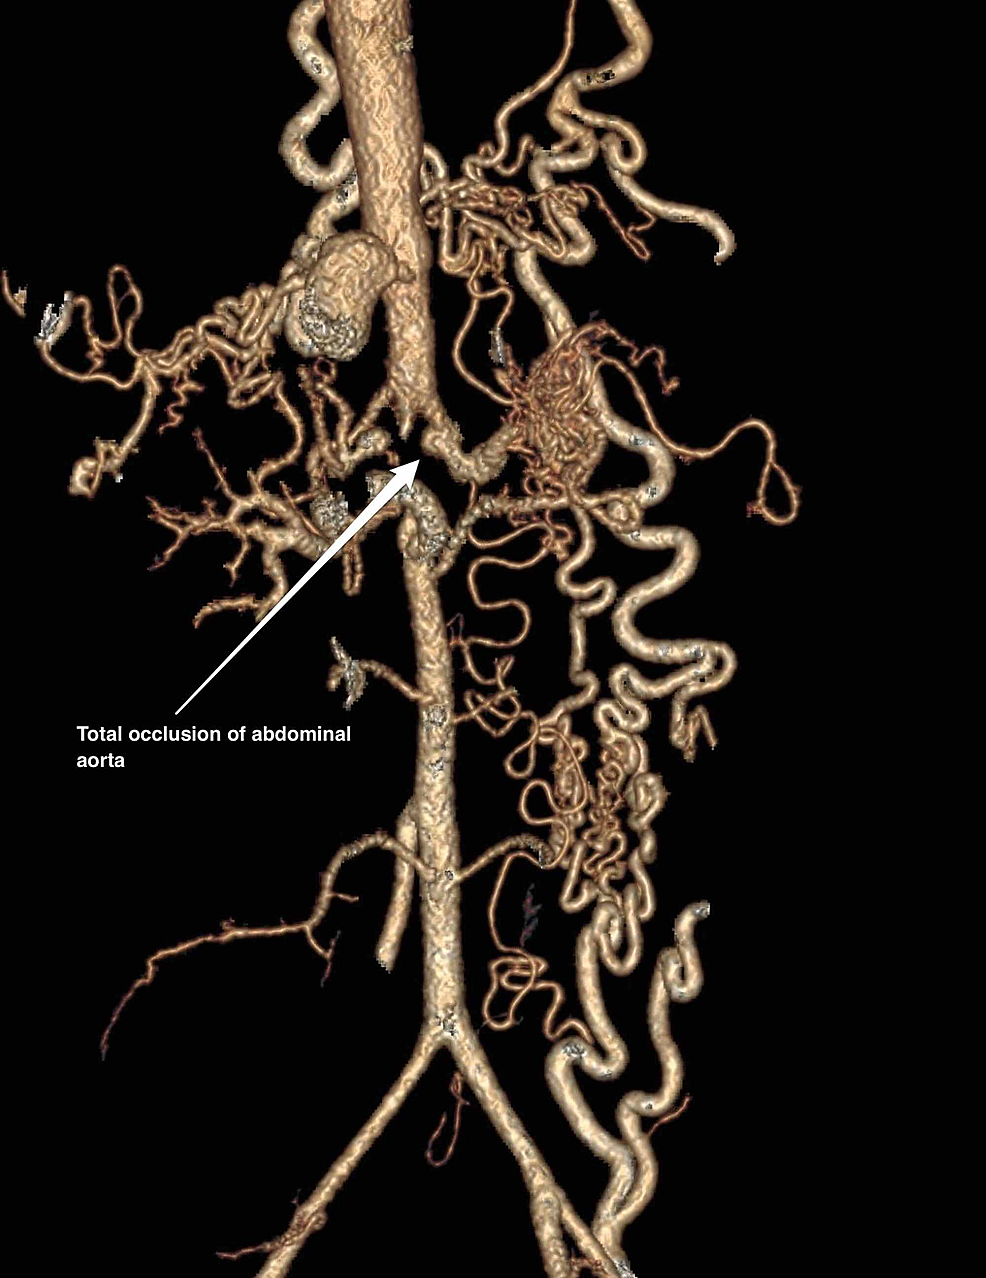 Computed-tomography-aortogram-showing-total-occlusion-of-the-abdominal-aorta